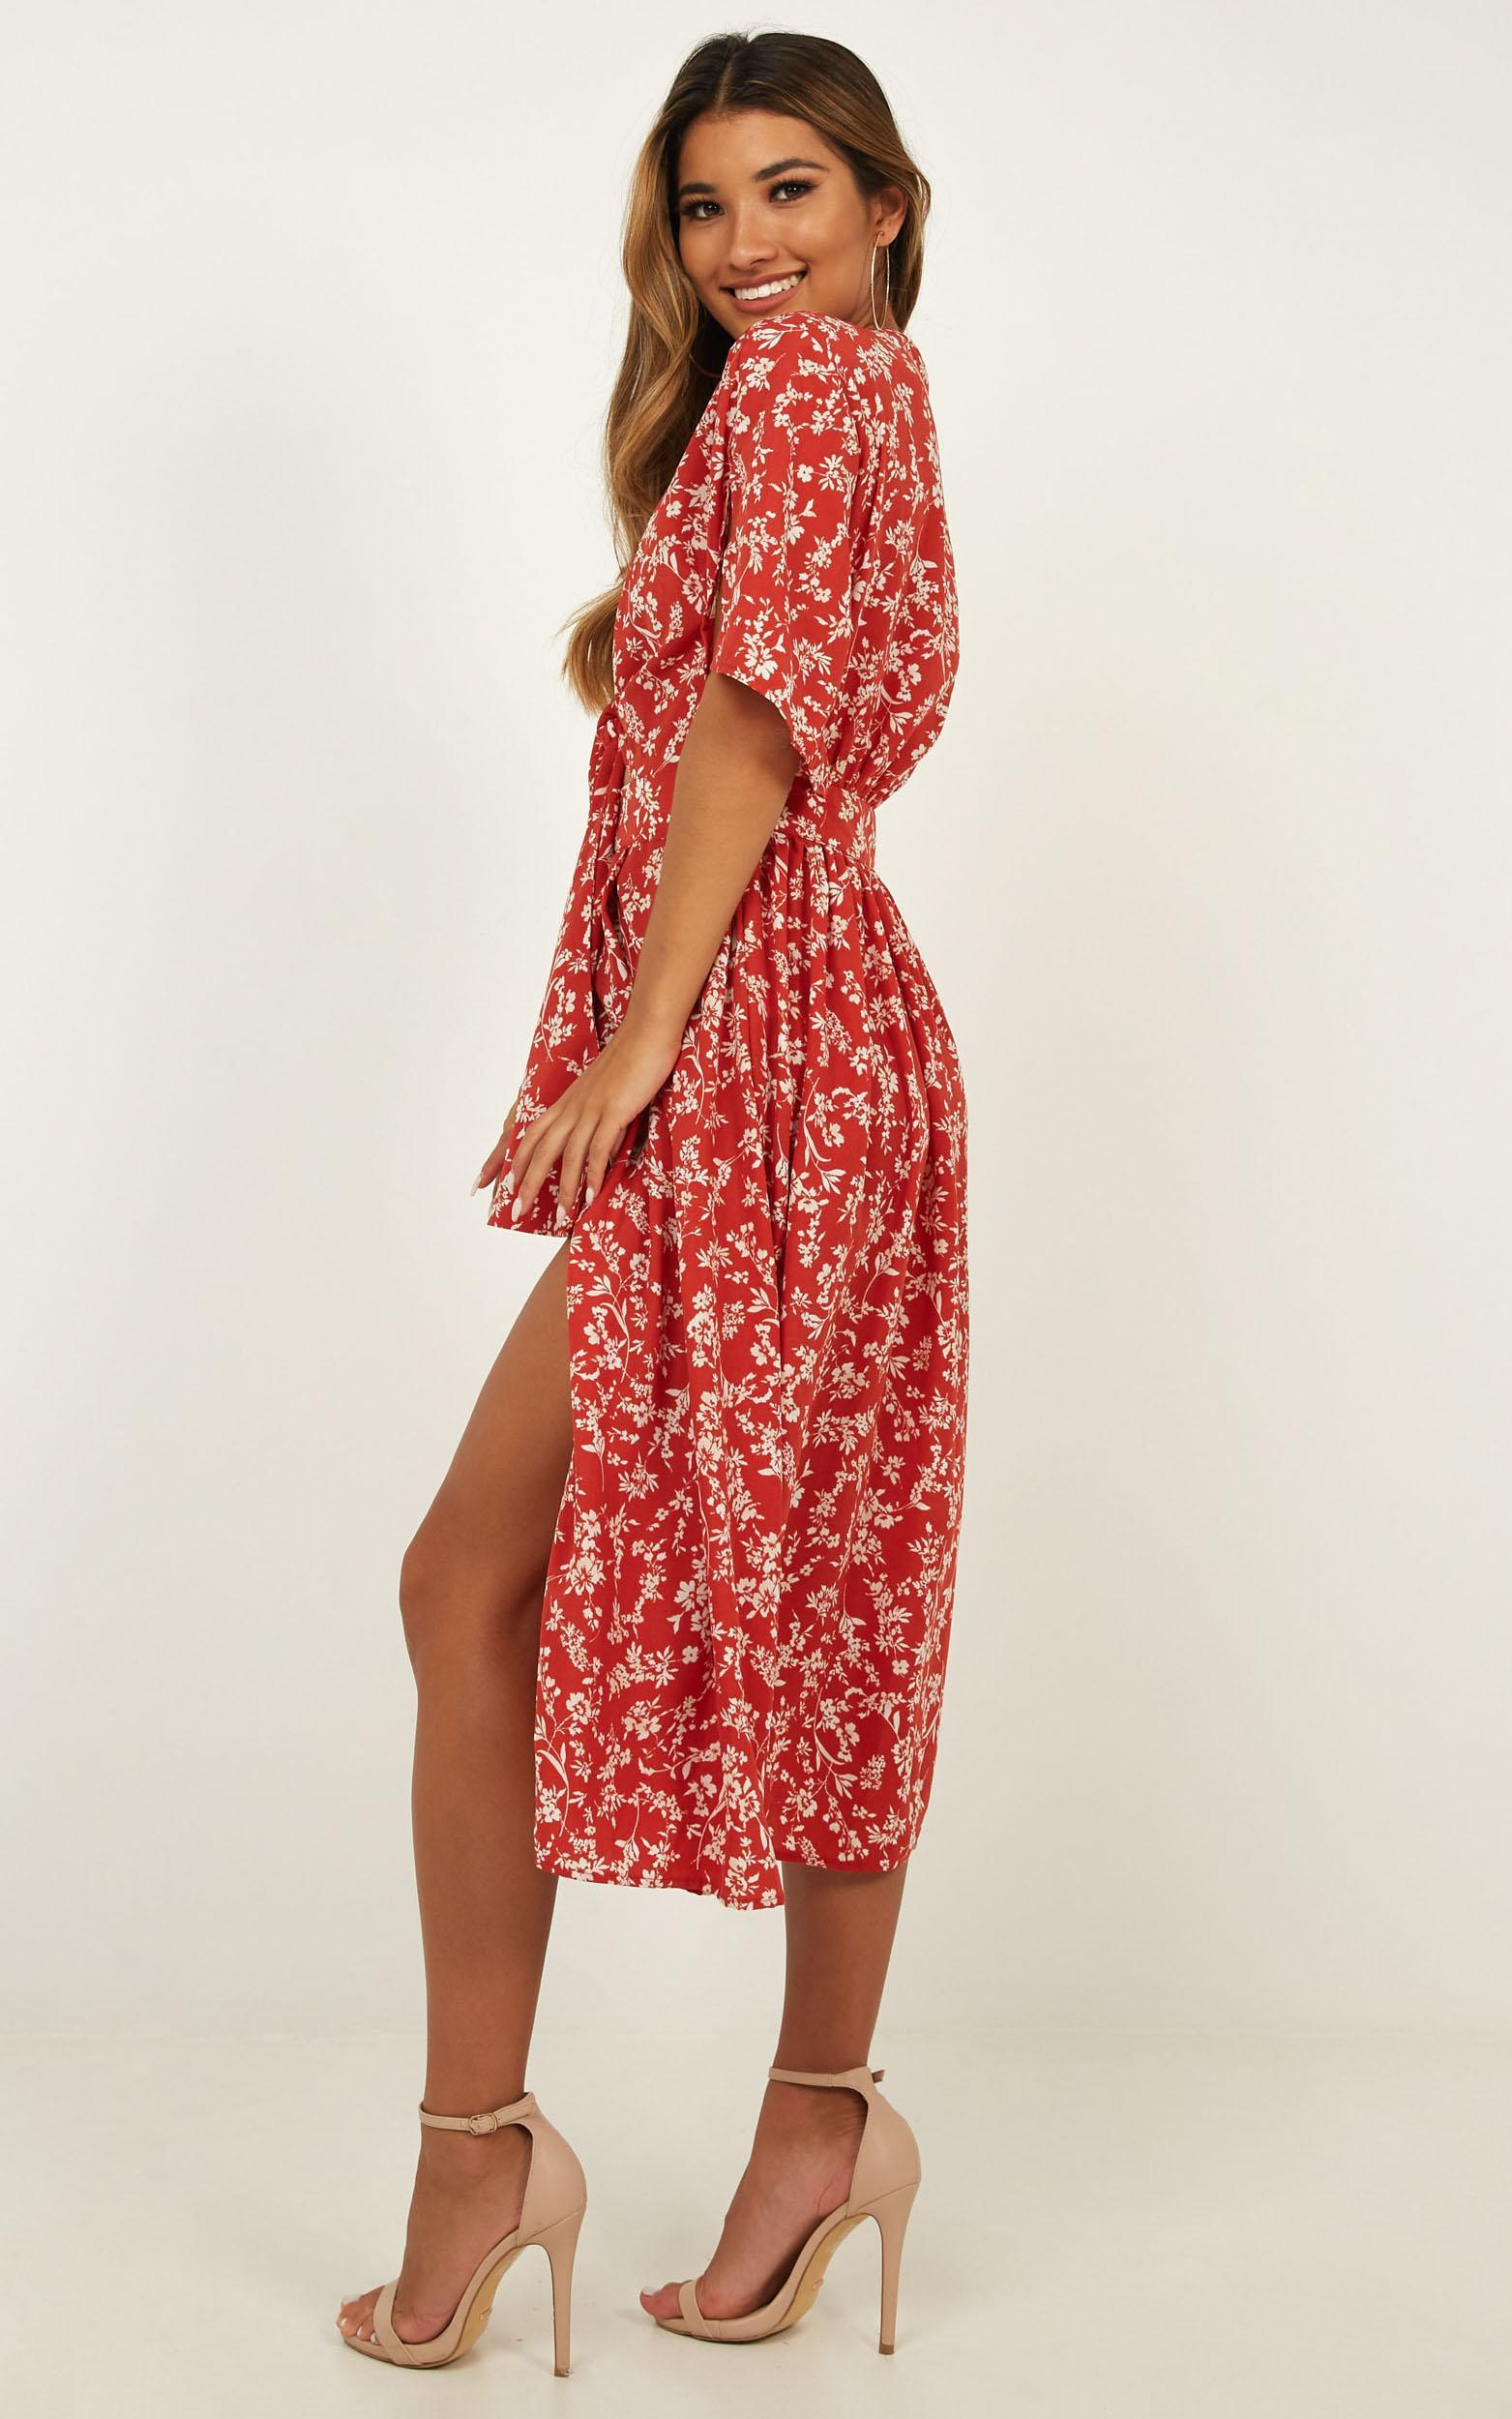 Inner Circle Only Dress In Red Floral - 4 (XXS), Red, hi-res image number null